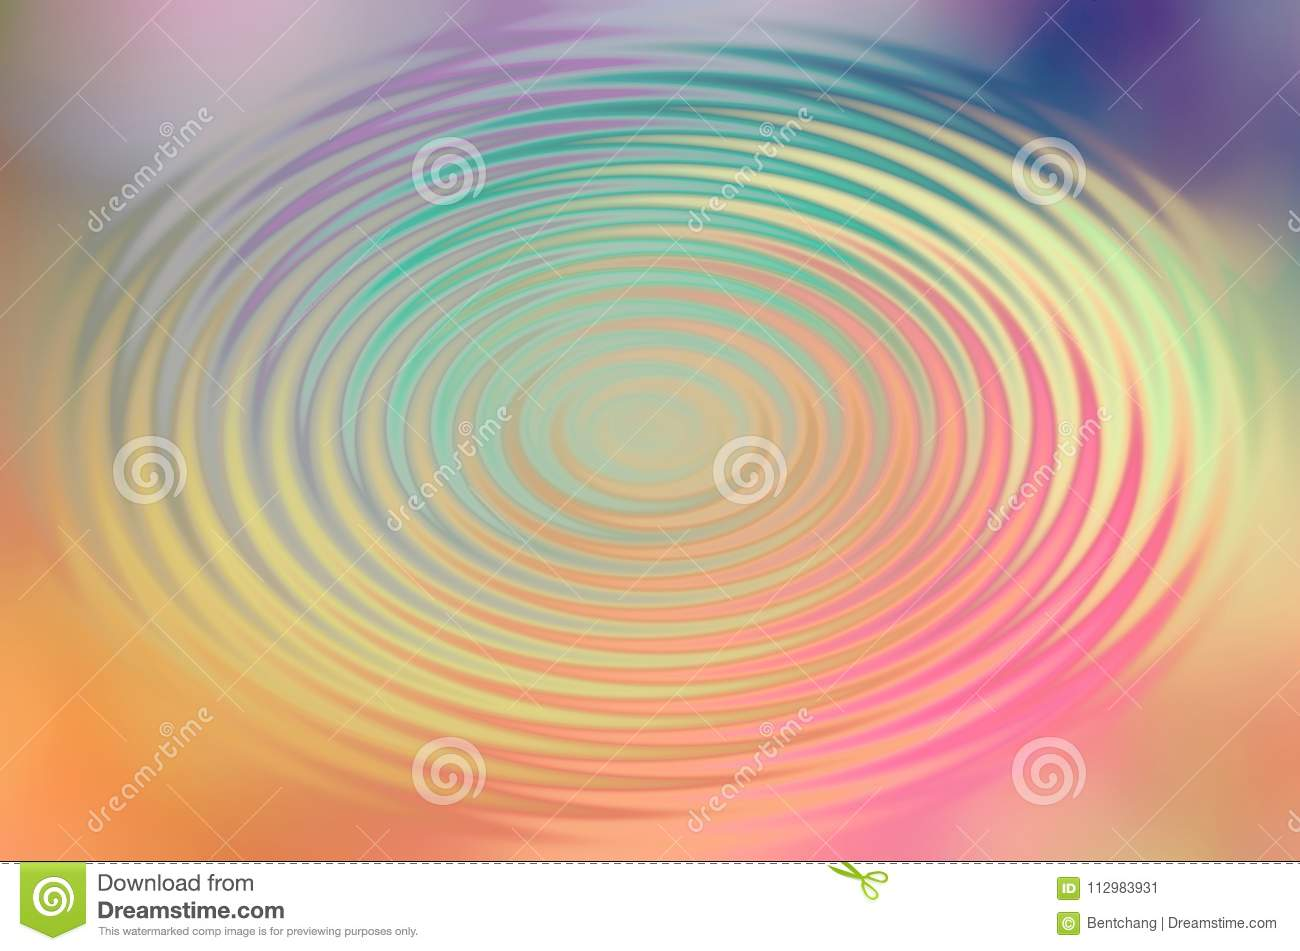 Conceptual background motion for design or texture. Blur, dream, painting, dreamy & close-up.